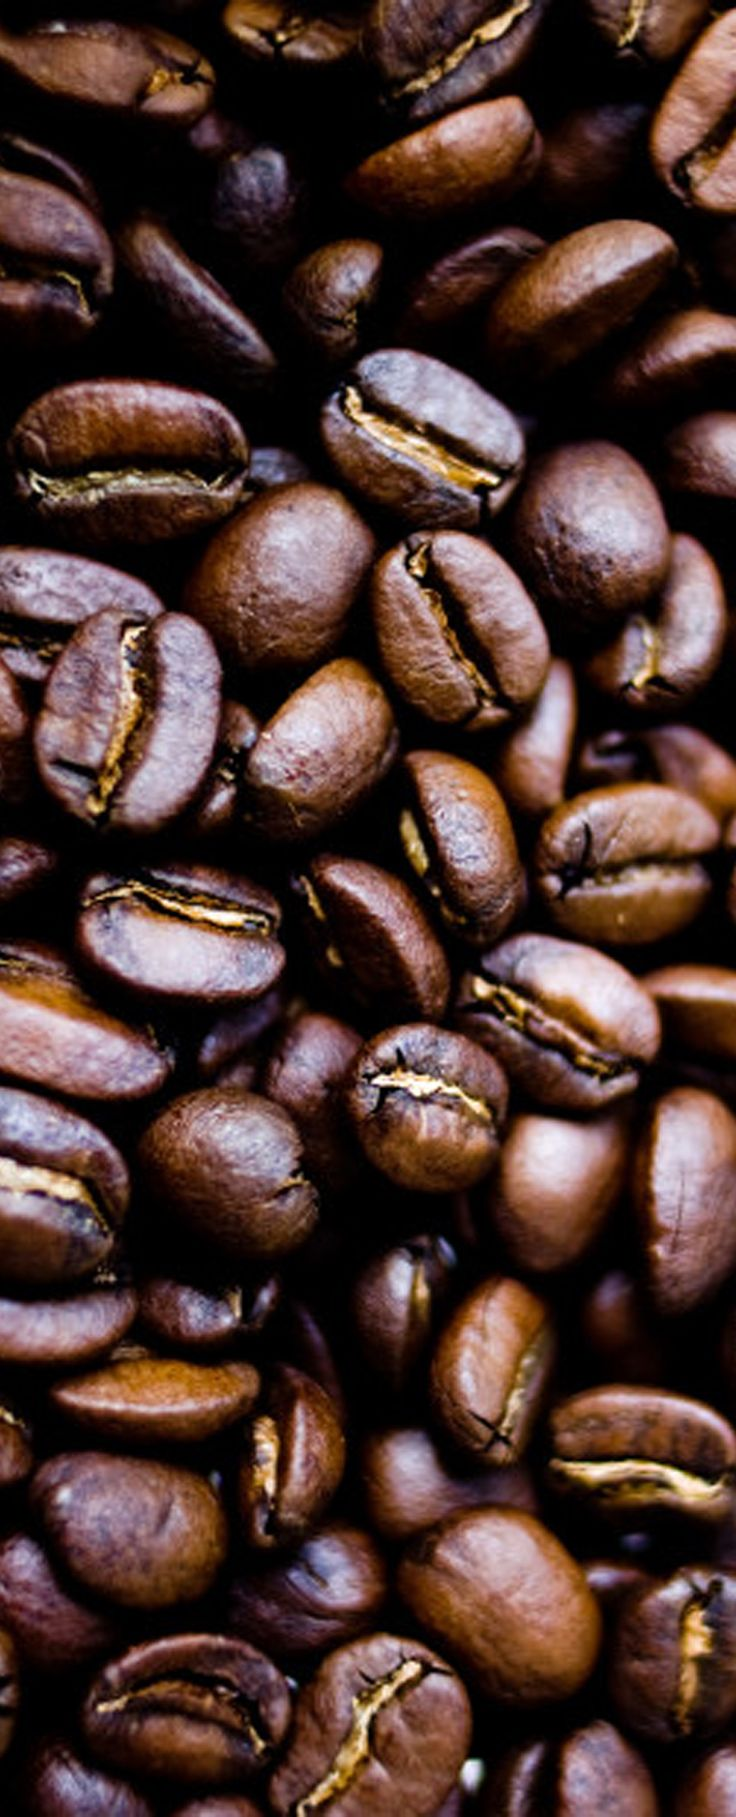 If You Care About Your Coffee, Then You Should Know How to Store It. Know how long your coffee beans will keep, whether you should ever consider freezing them, and what you should do with them once they go stale.